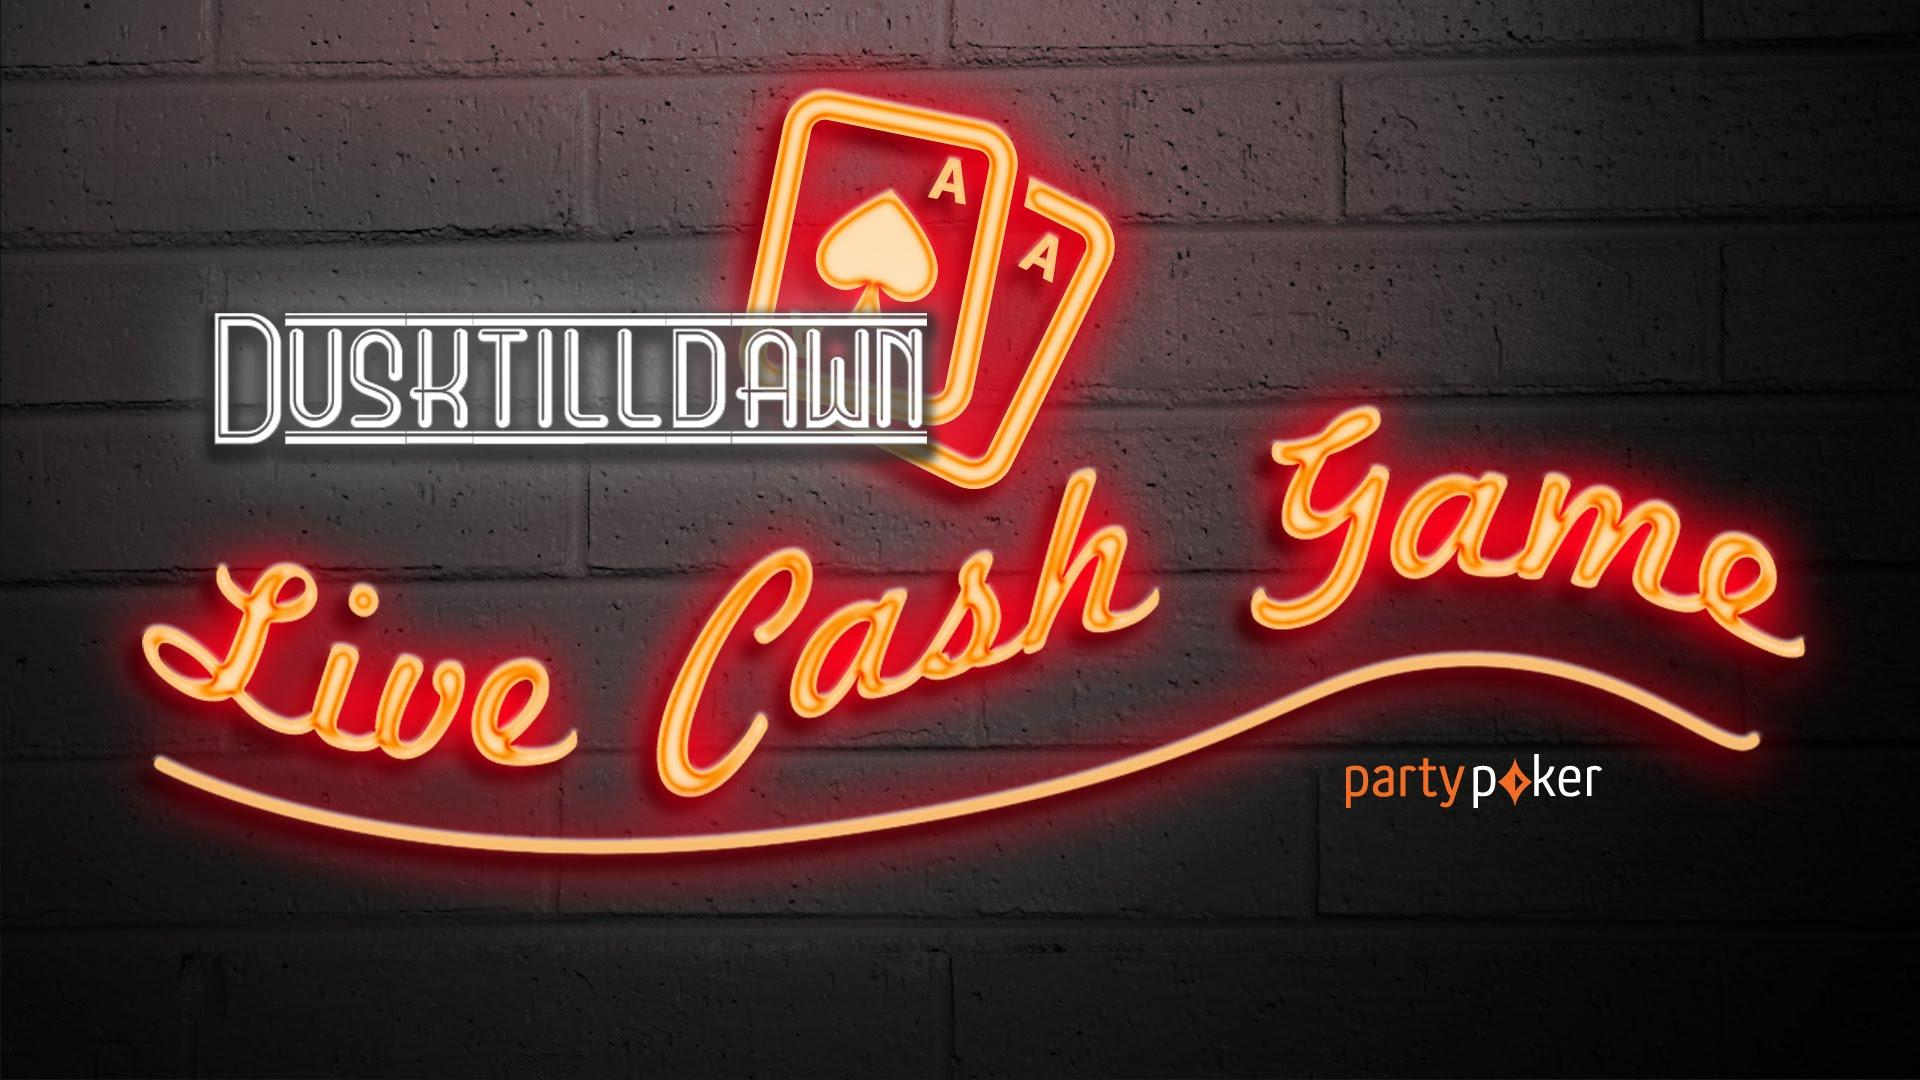 DTD Live Cash Game - 27 April 2016